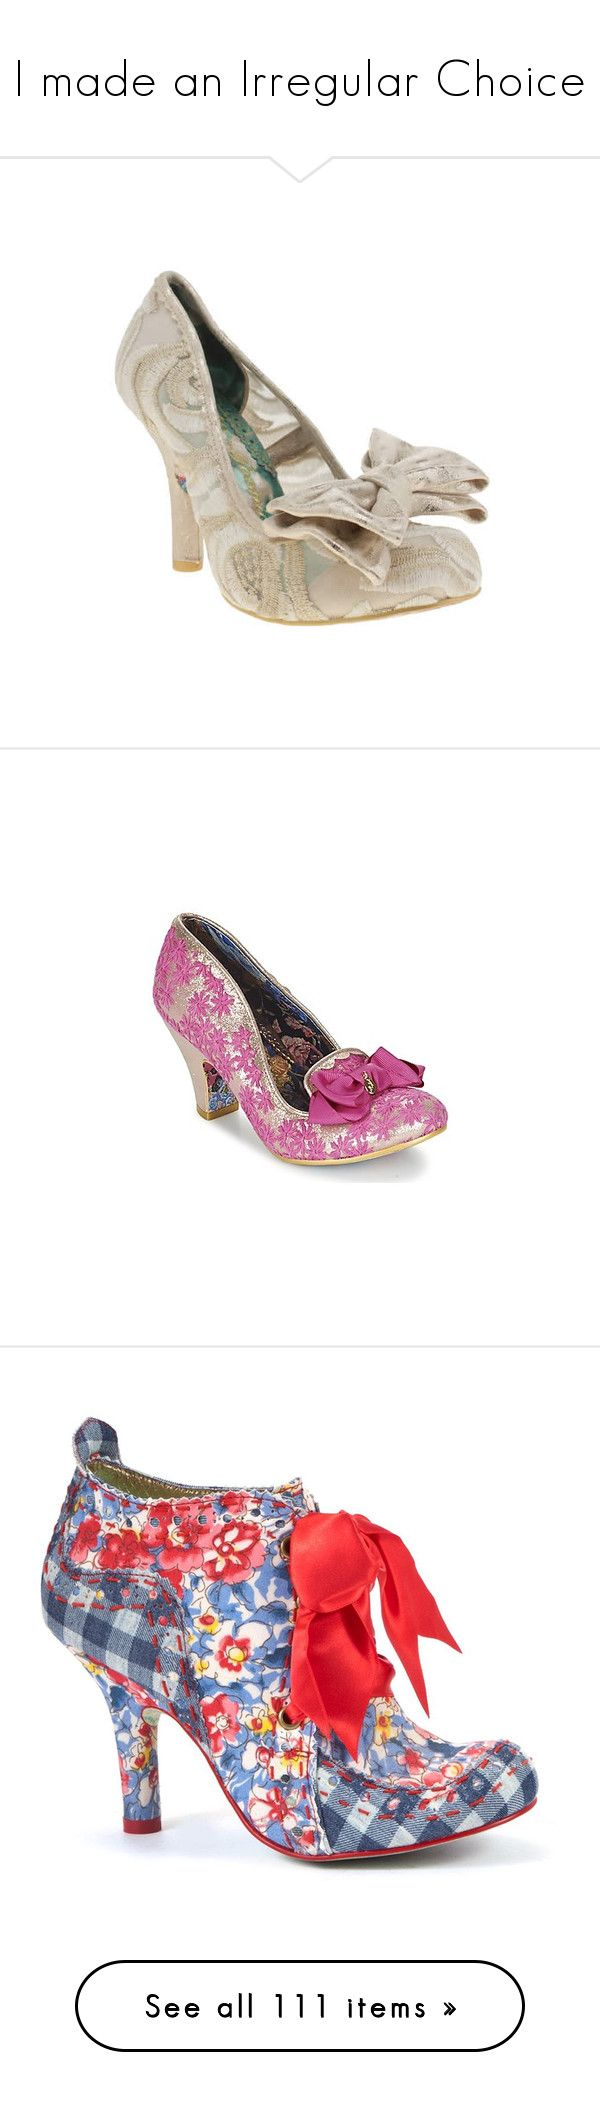 """""""I made an Irregular Choice"""" by taught-to-fly19 on Polyvore featuring shoes, irregular choice shoes, metallic shoes, metallic high heel shoes, high heeled footwear, bow shoes, pumps, pink, irregular choice e synthetic shoes"""